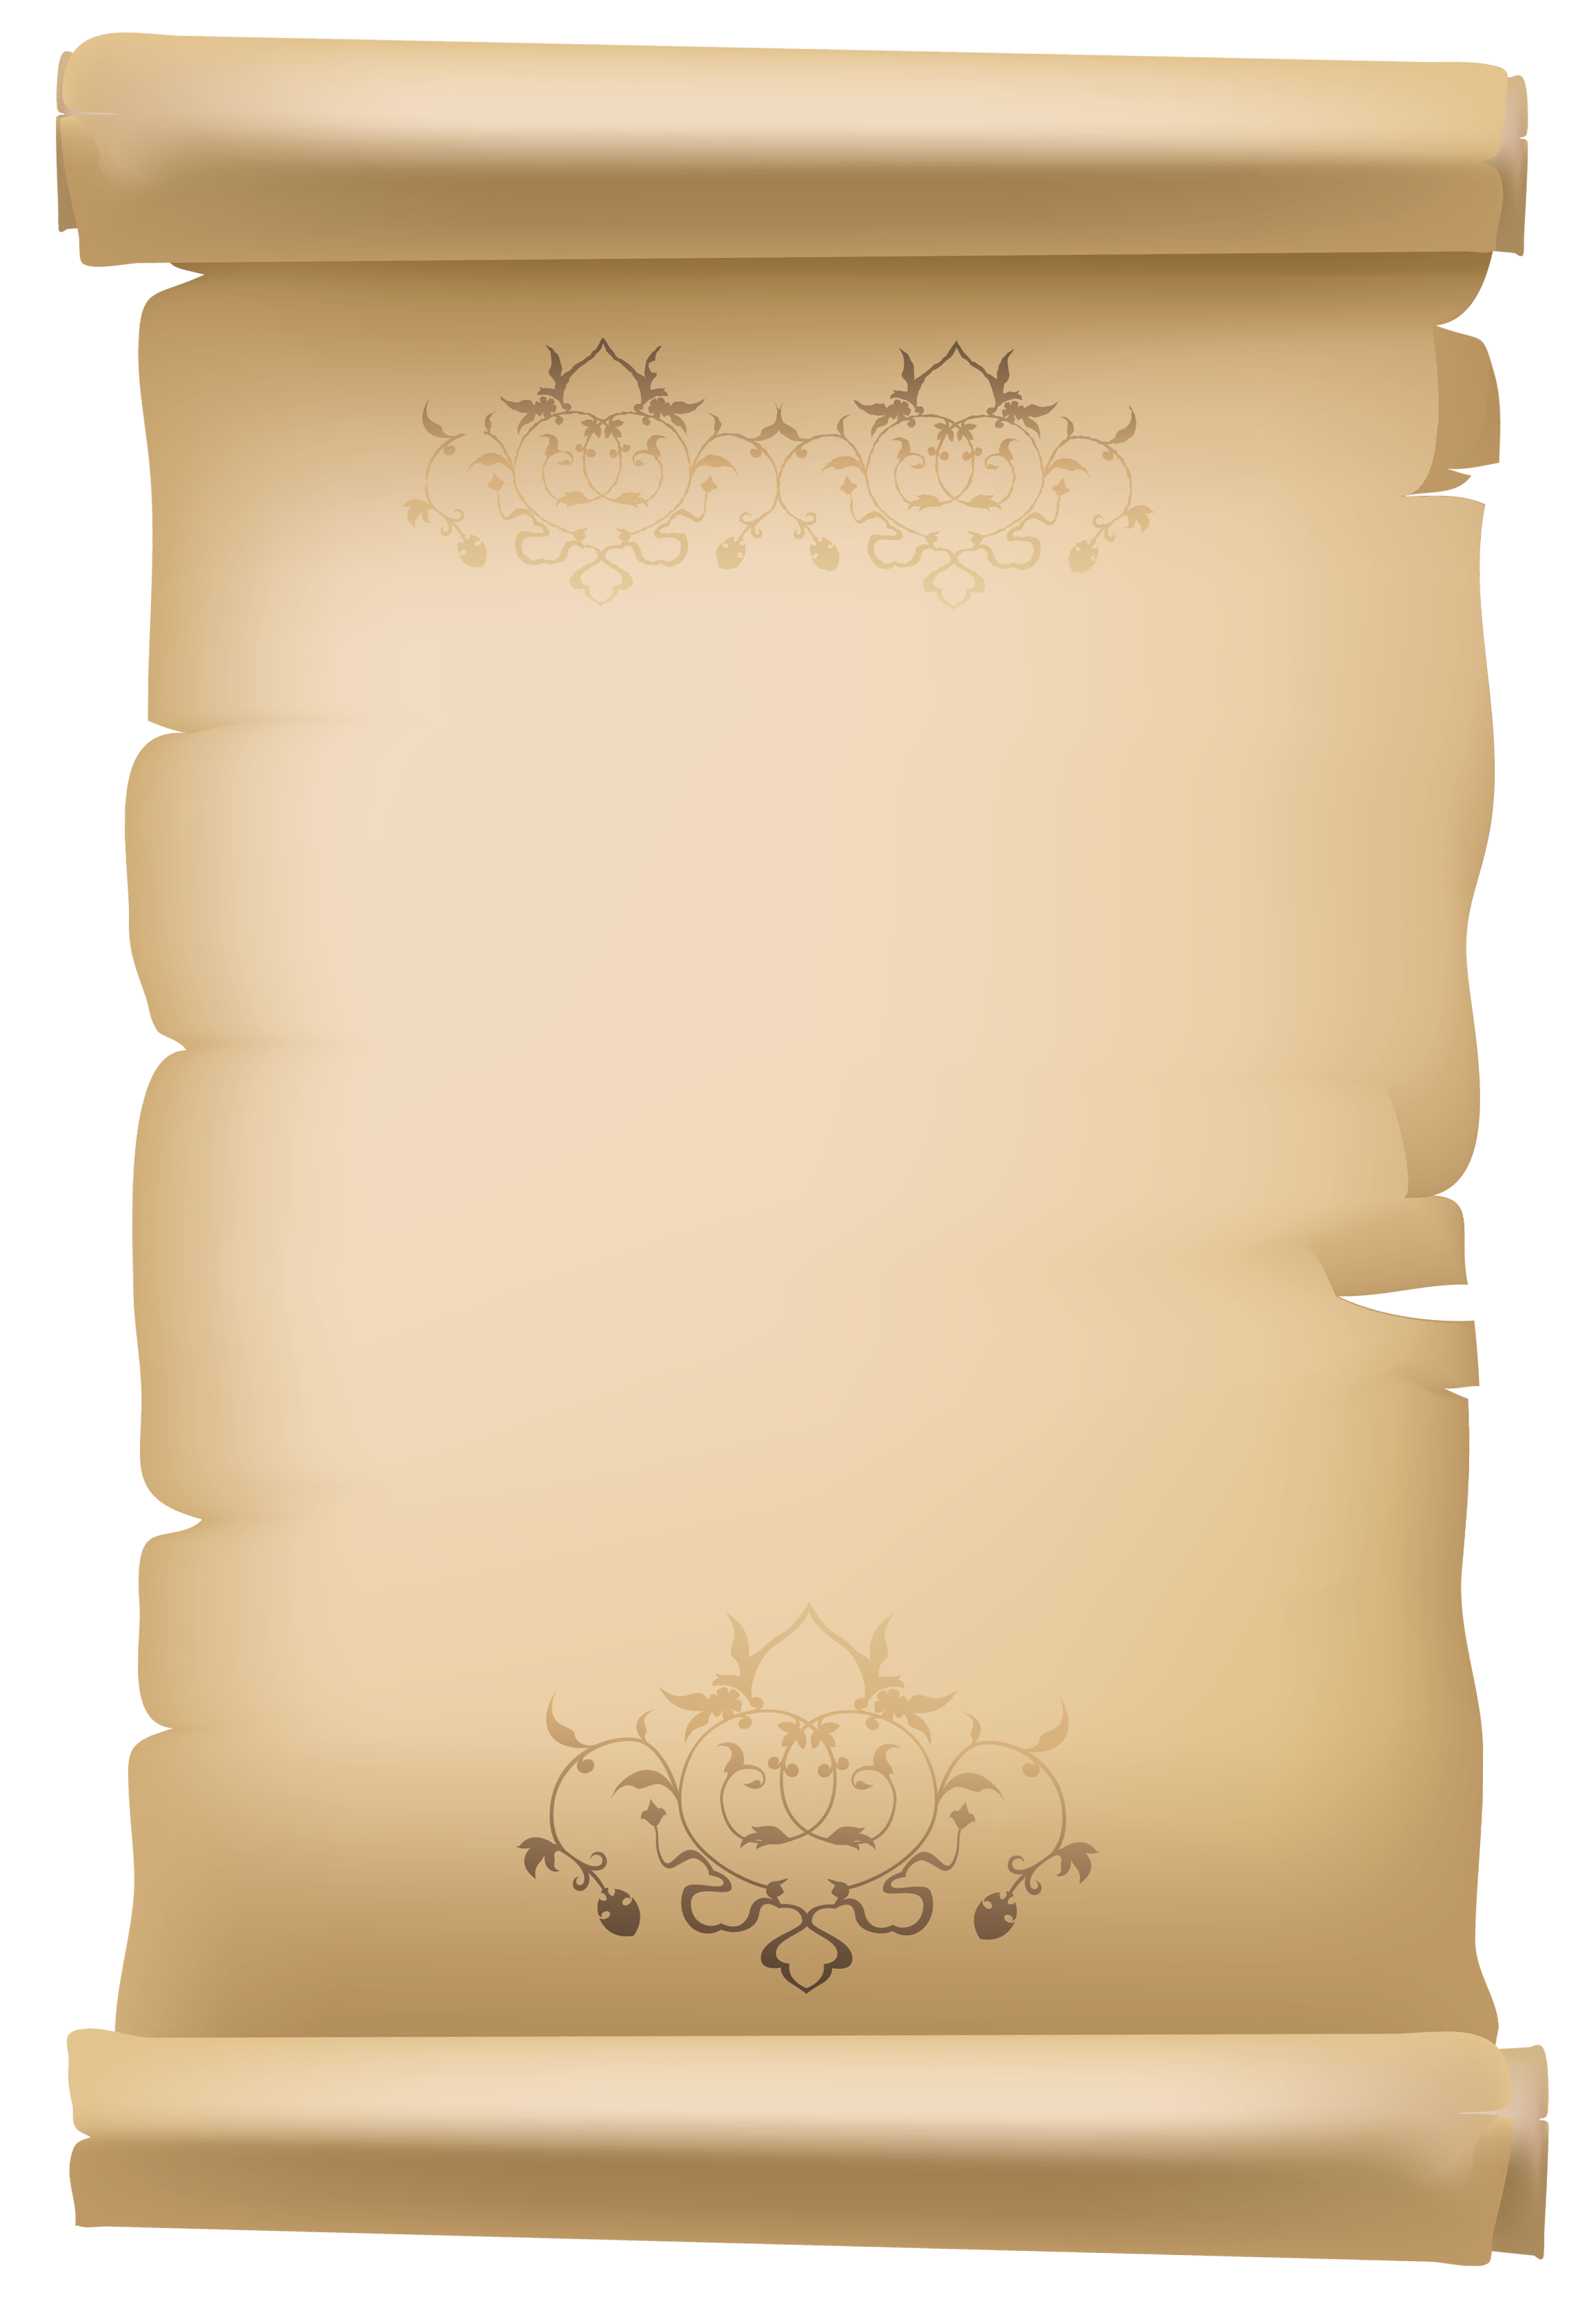 Treaty clipart scrol. Scroll old decorative paper